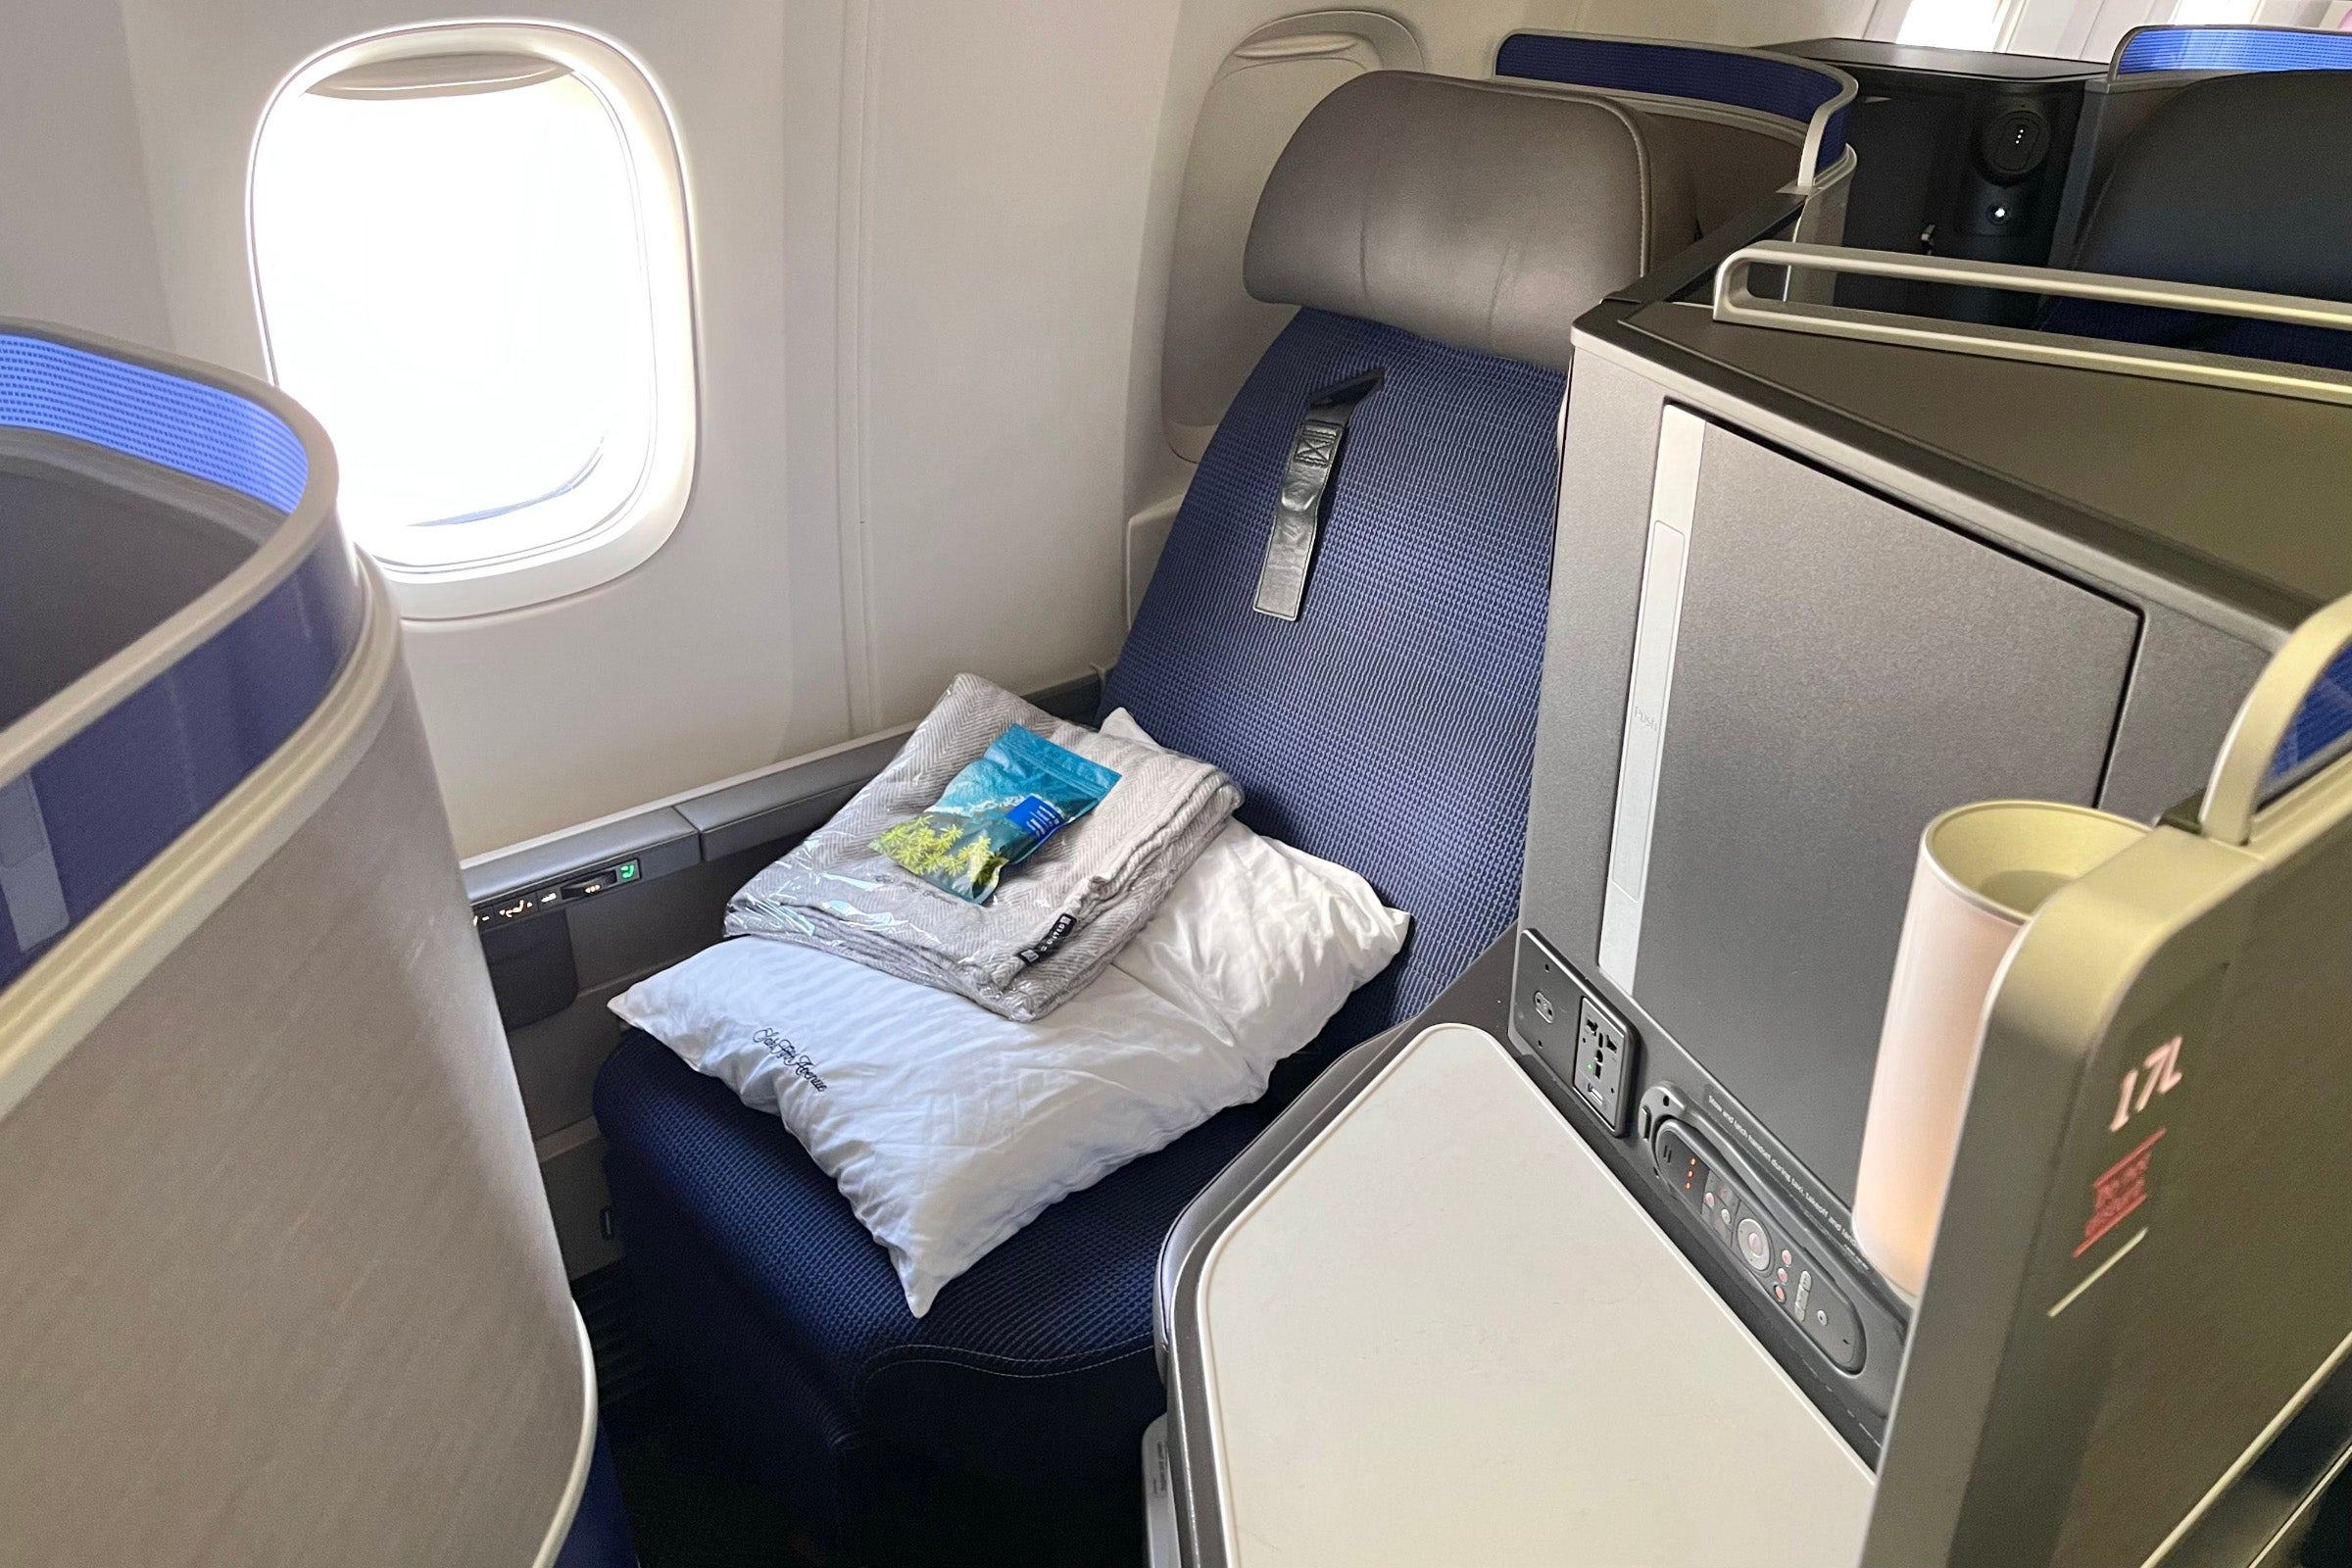 How to fly transcontinental in a lie-flat seat for 12,500 miles